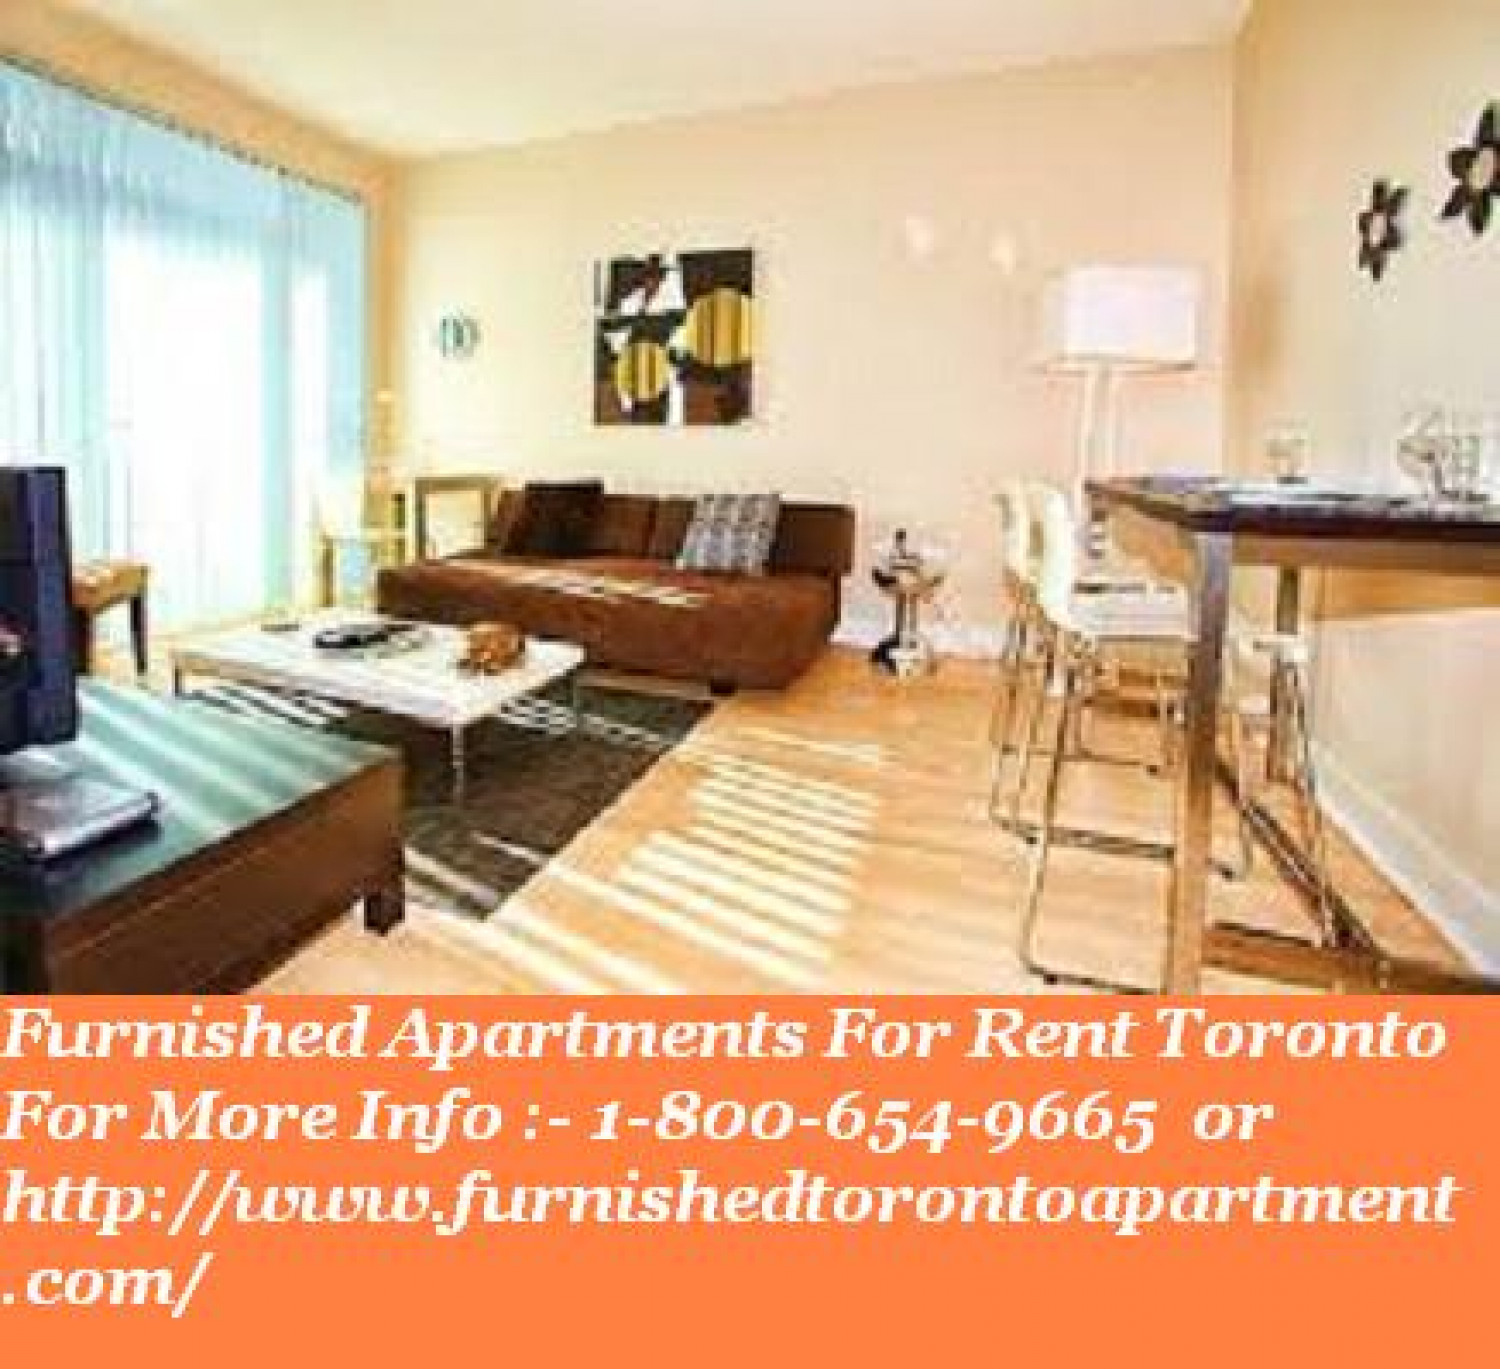 Furnished Apartments For Rent: Furnished Apartments For Rent Toronto Infographic